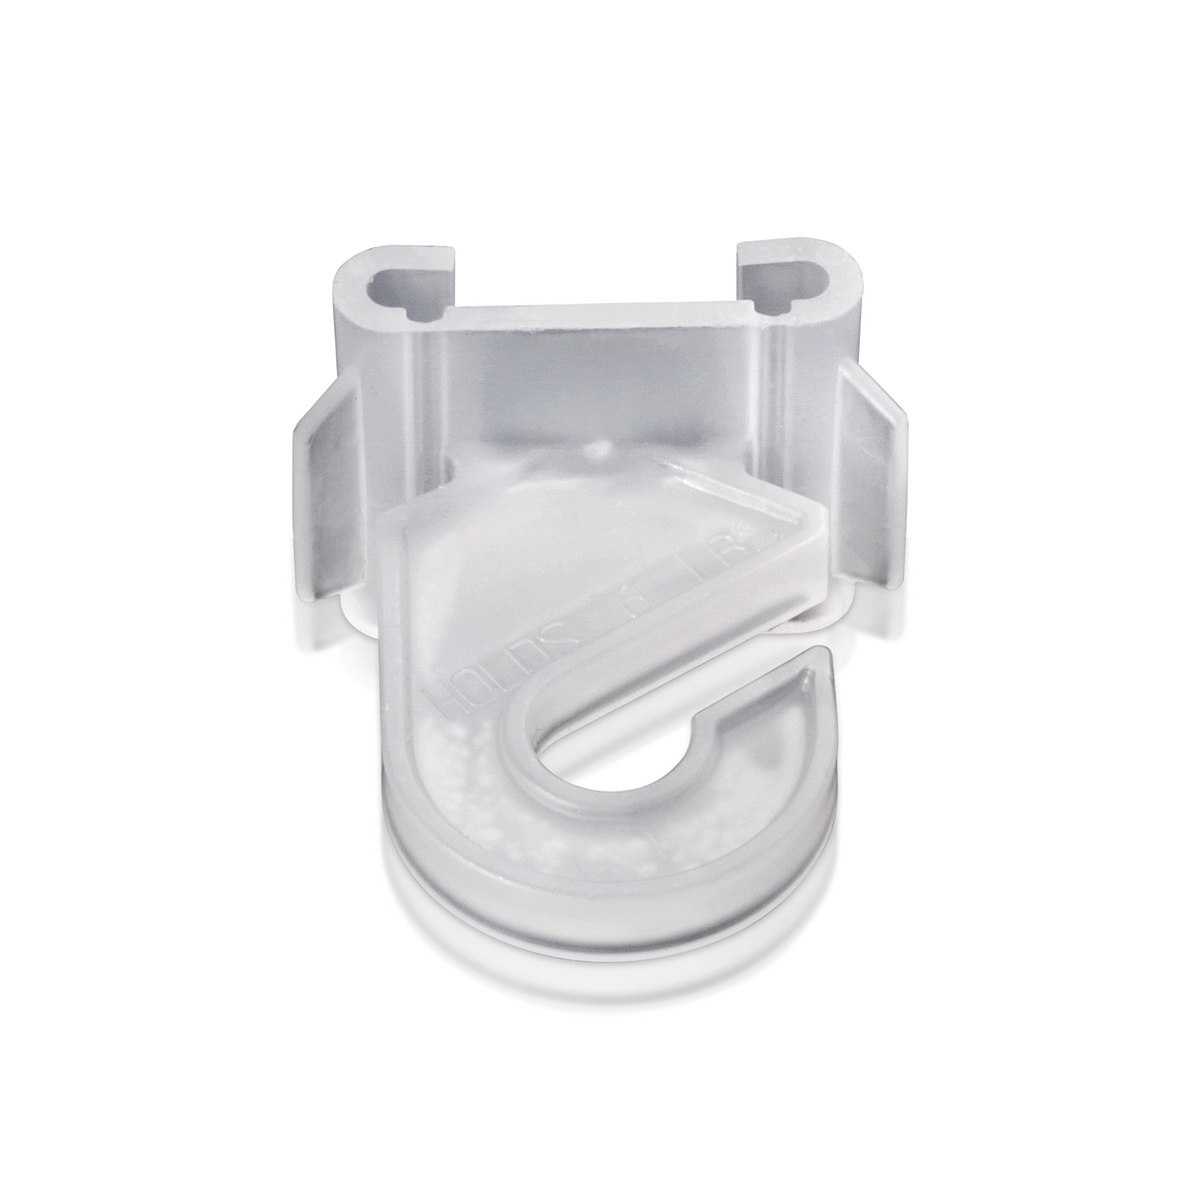 Plastic Flexible T-Bar Clamp for Drop Ceilings